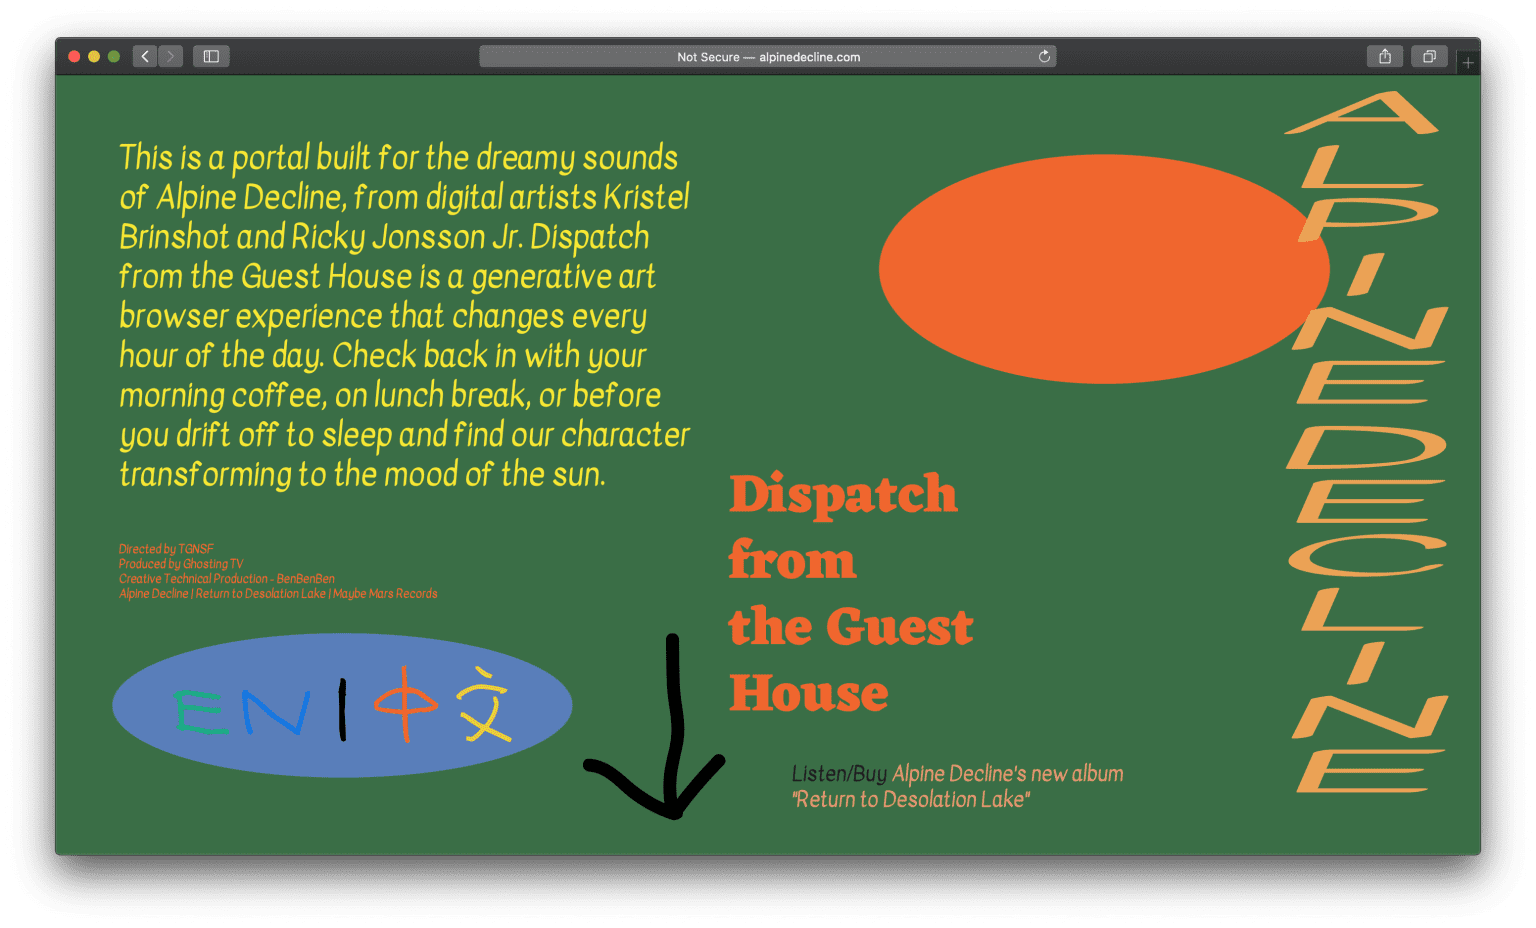 Alpine Decline - Dispatch from the Guest House